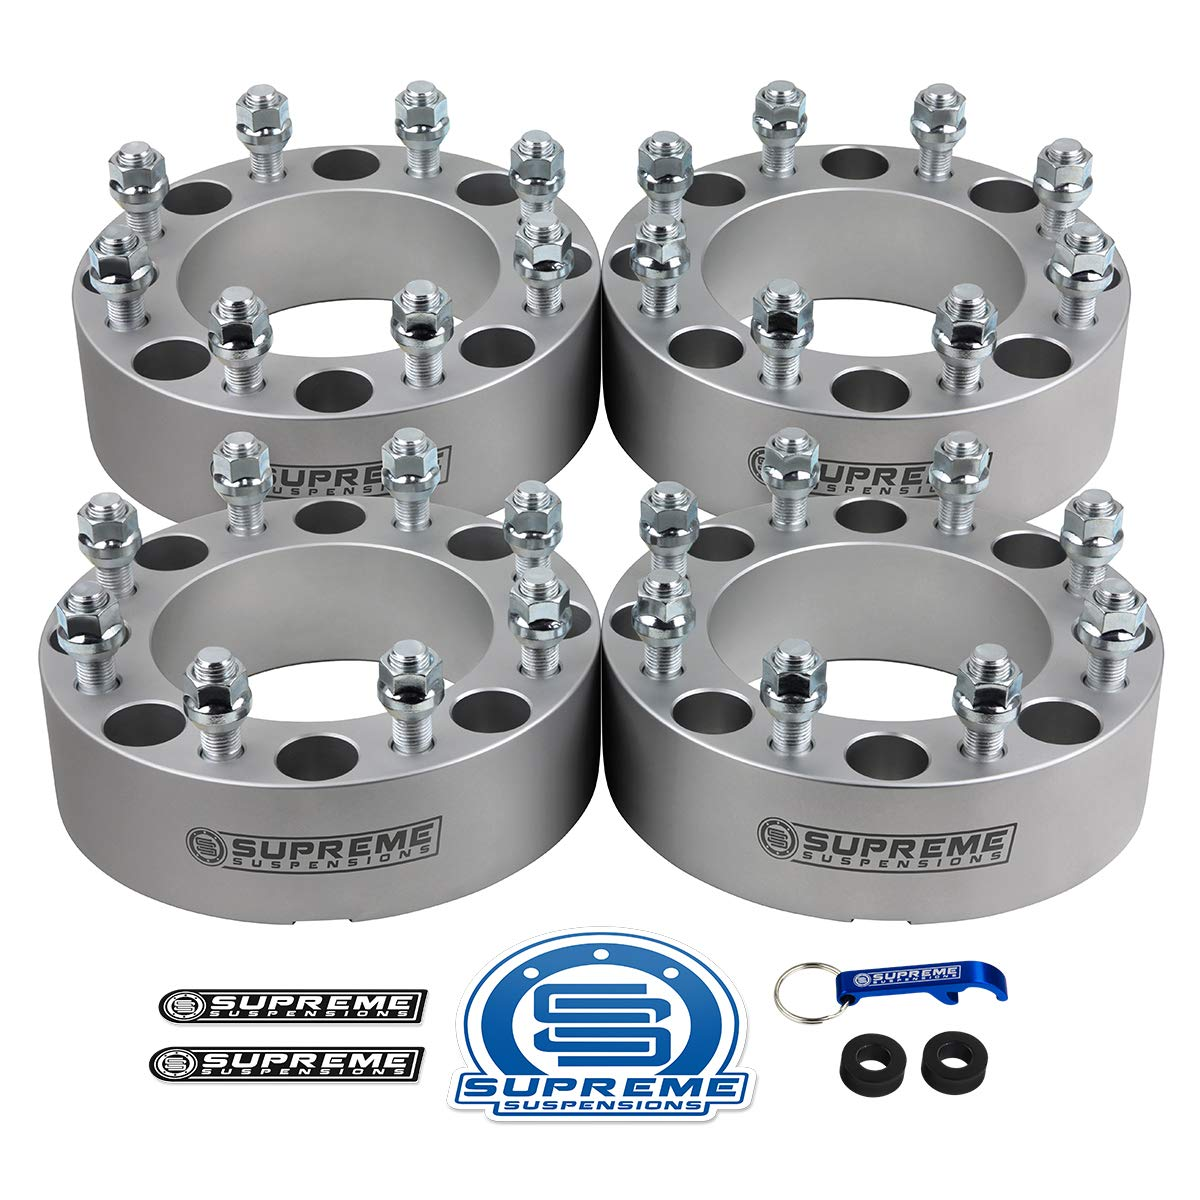 Supreme Suspensions - (4pc) 1994-2009 Dodge Ram 2500 2'' Wheel Spacers 8x6.5'' (8x165.1mm) with 9/16''x18 Studs [Silver]